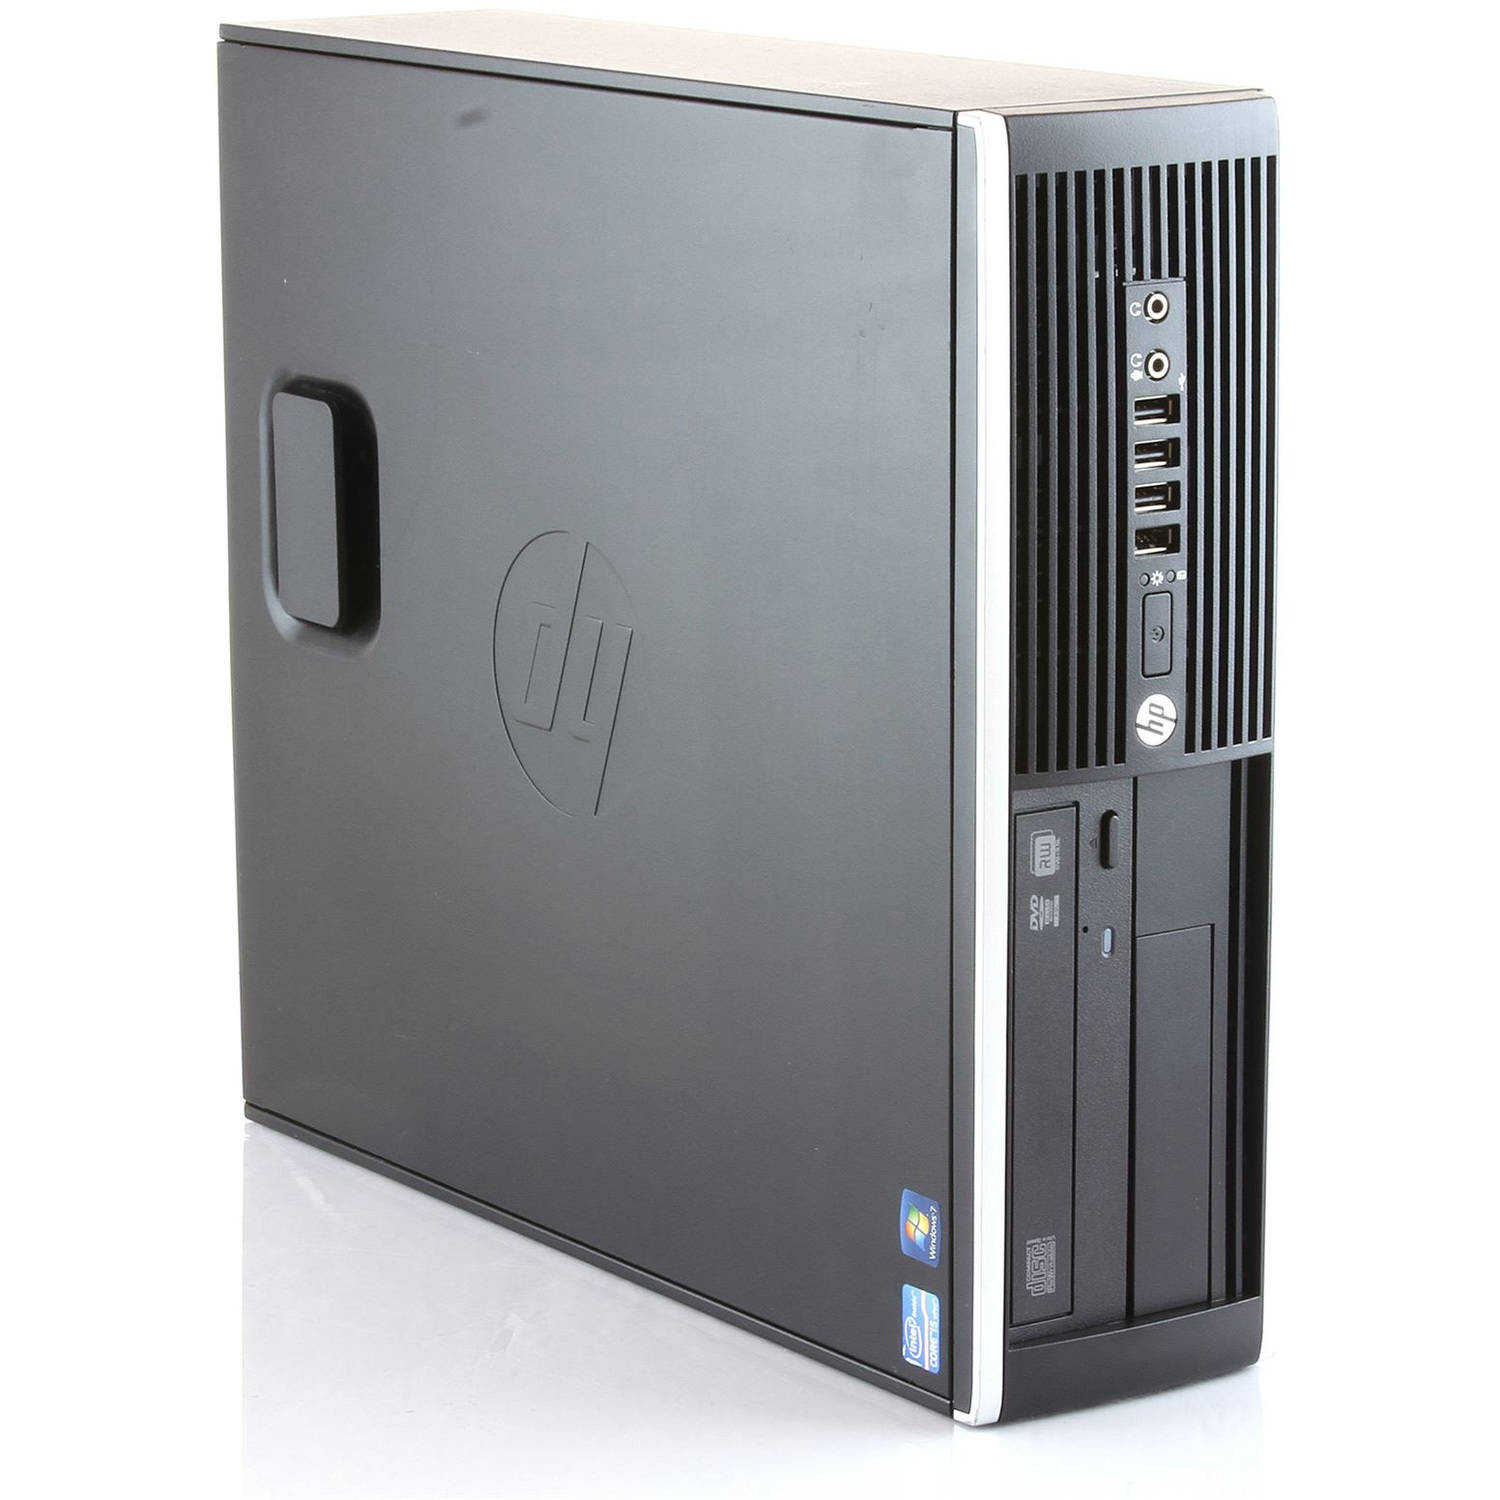 Refurbished HP 8300 SFF Desktop PC with Intel Core i5-3470 Processor, 8GB Memory, 2TB Hard Drive and Windows 10 Home (Monitor Not Included)